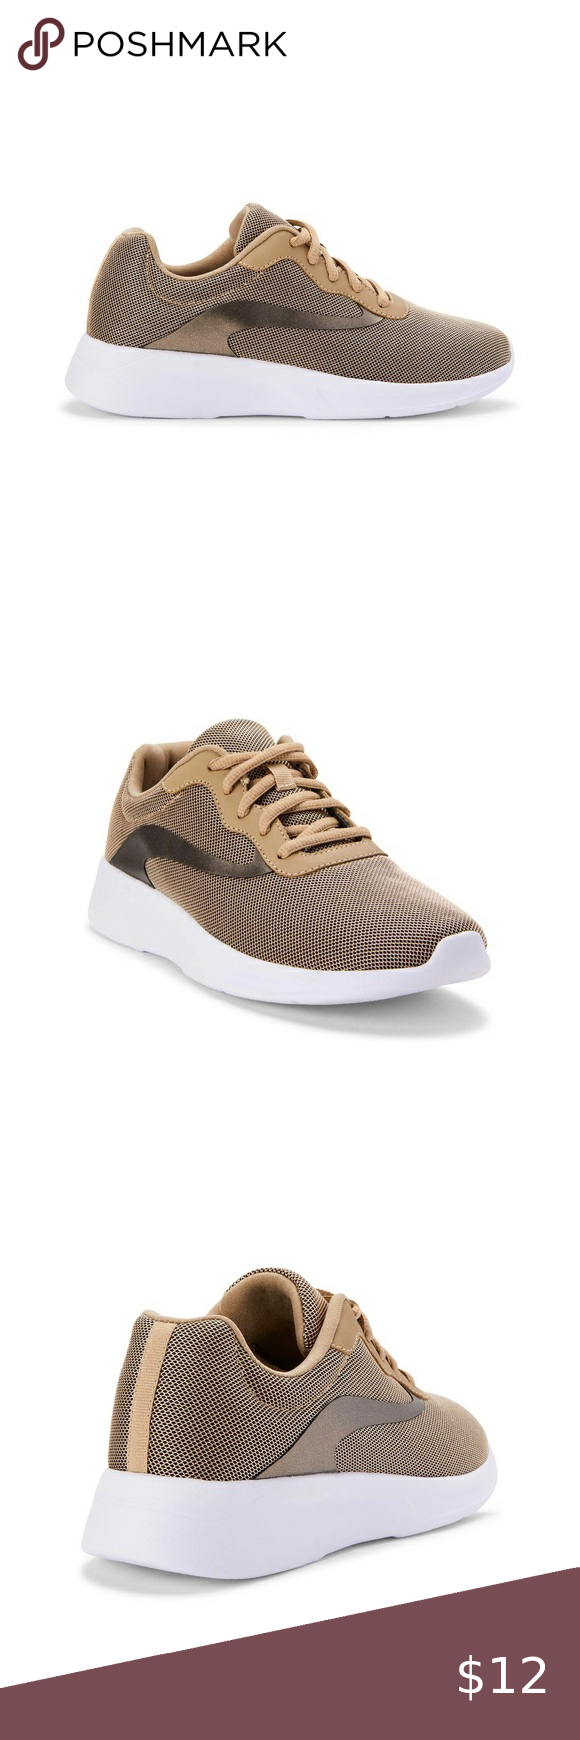 Athletic Works Women's Mesh Trainer in